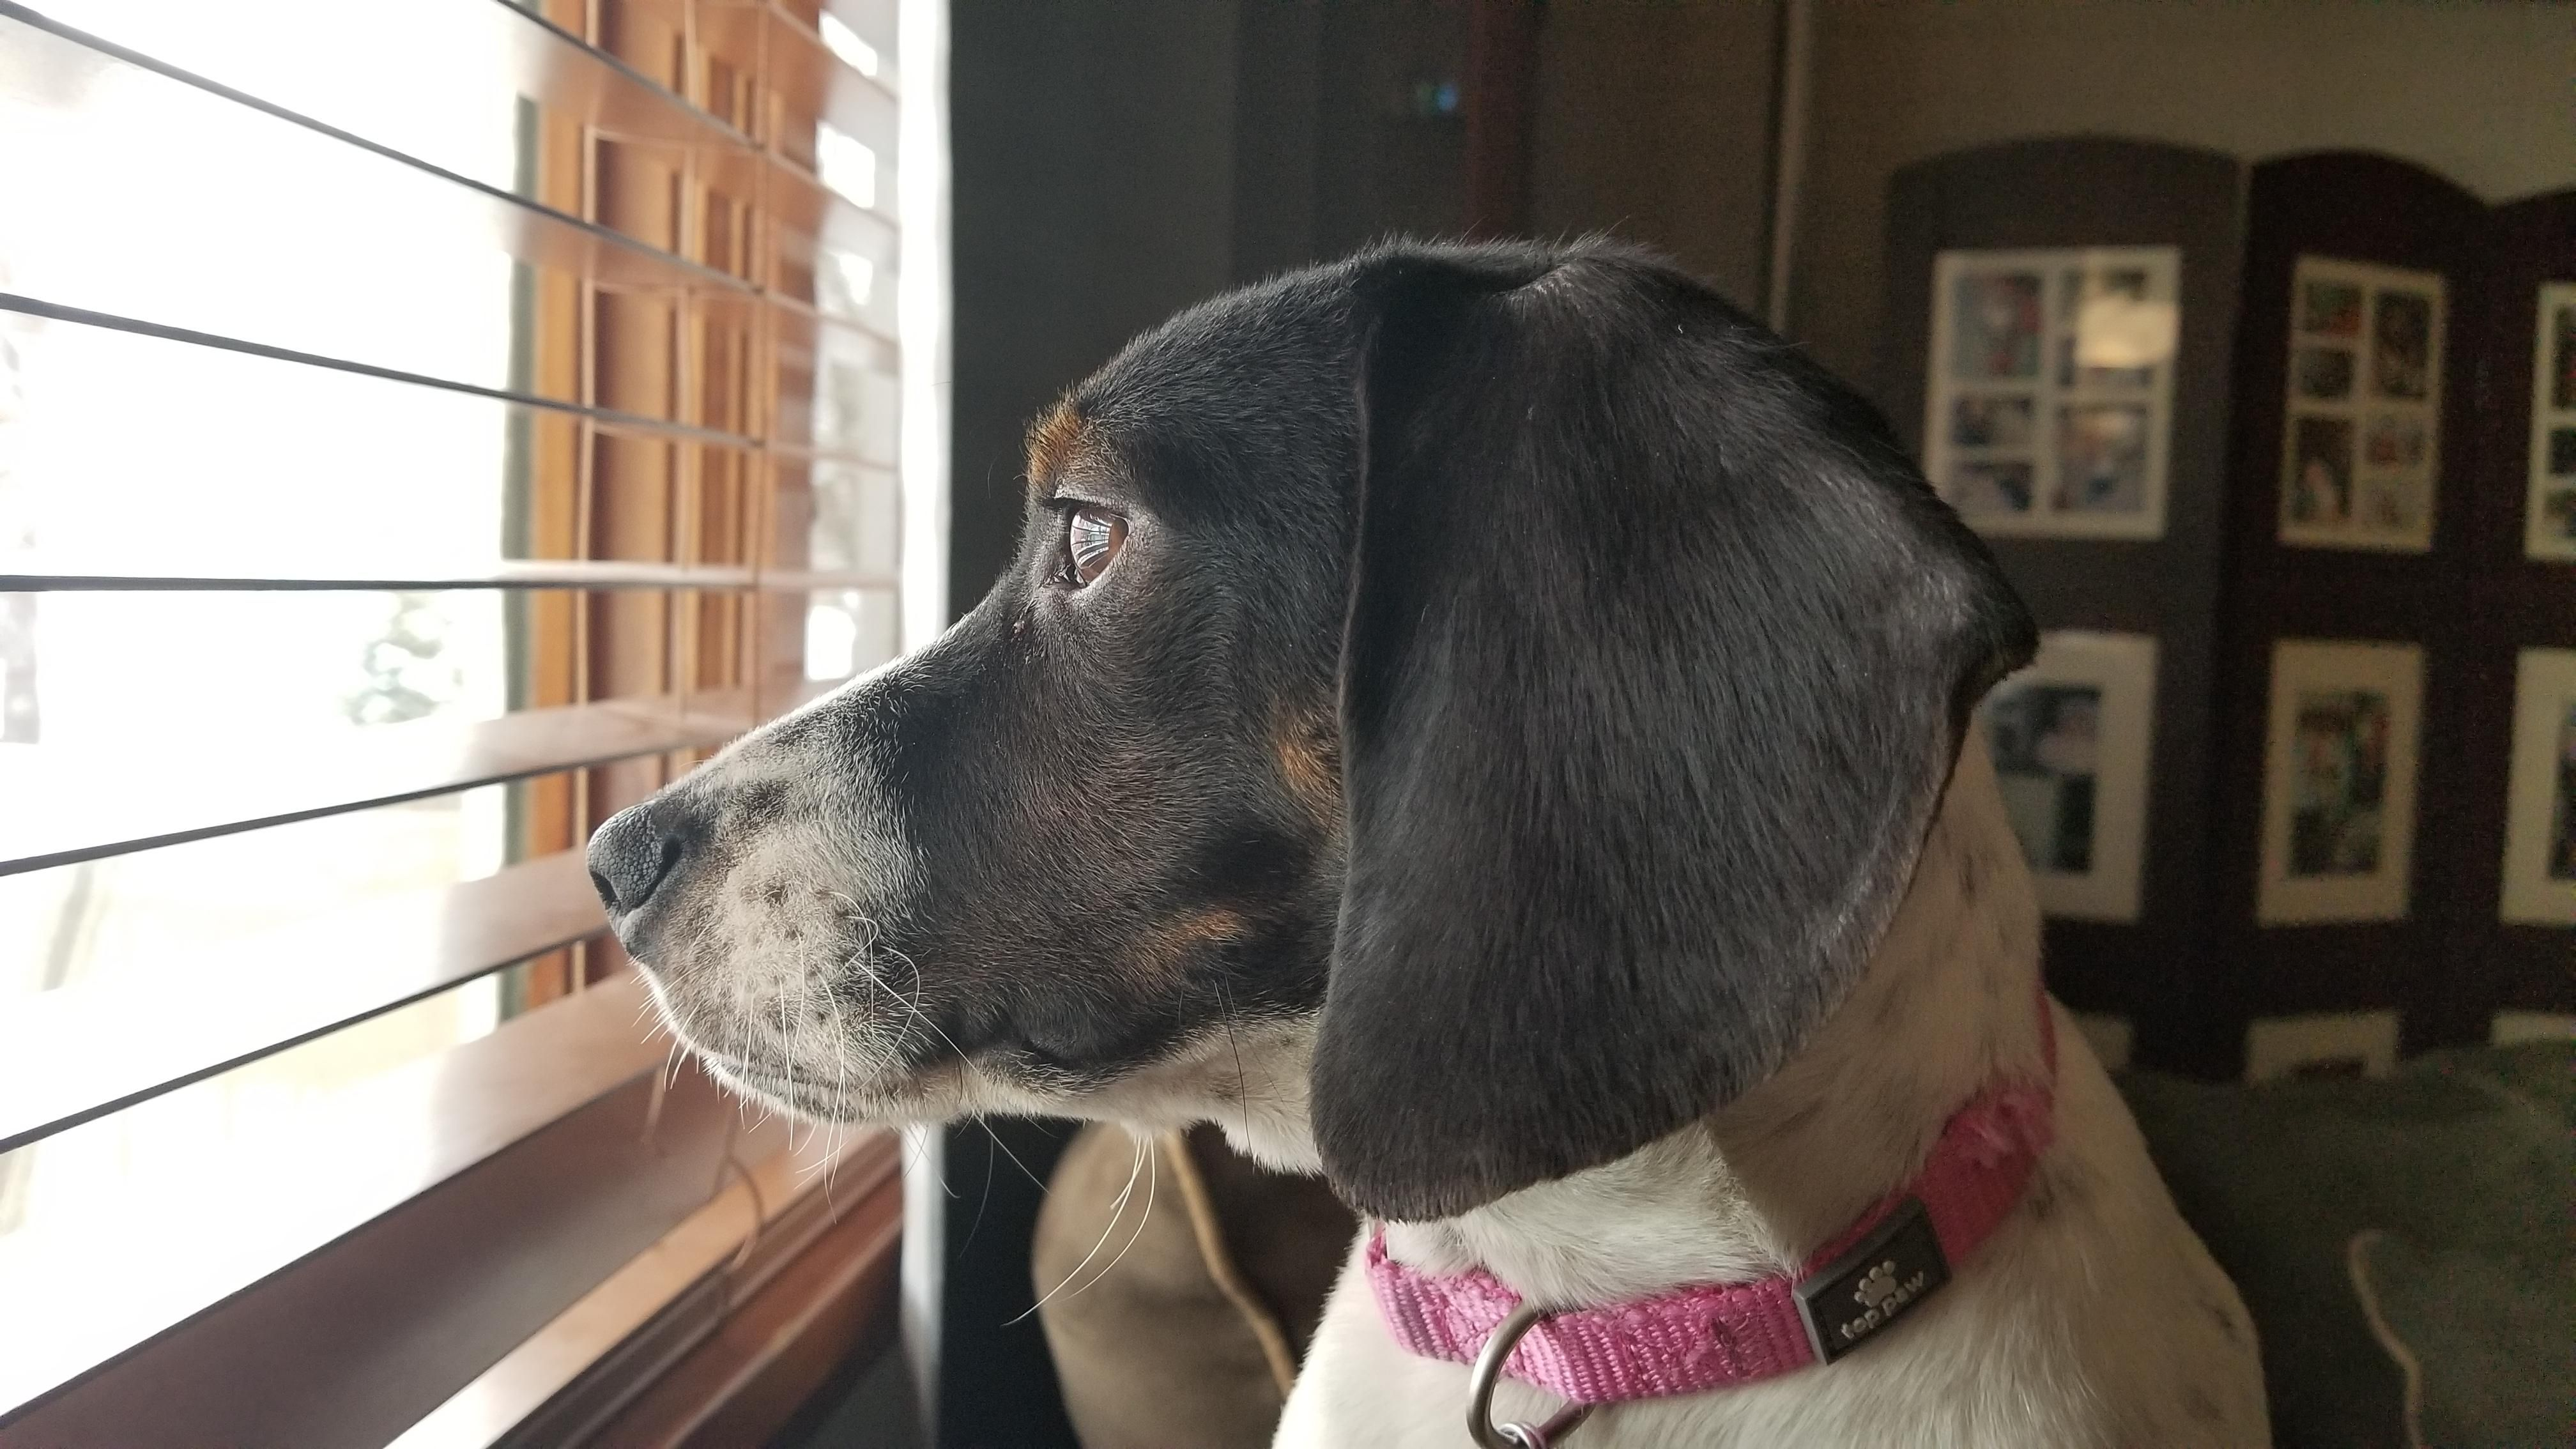 Our Little Beagle Pup Loves To Tentatively Look Out Of Our Front